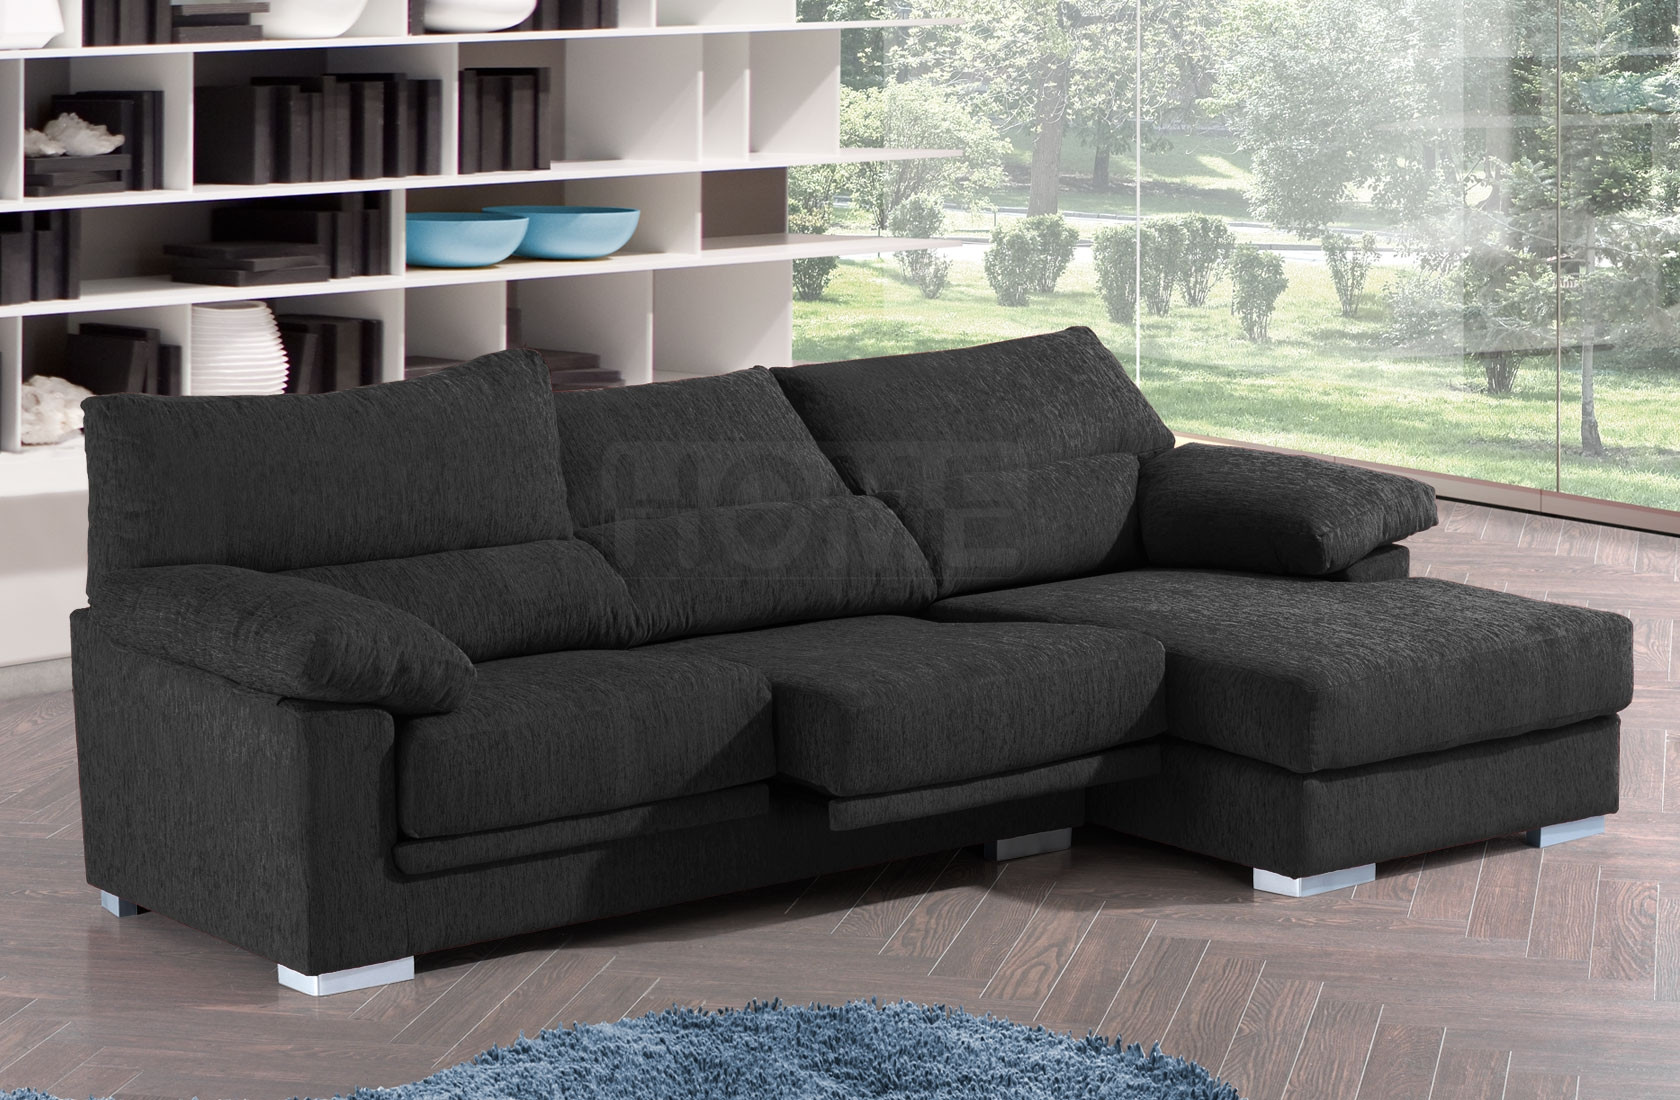 Sofa 3 Plazas Chaise Longue Único Chaise Longue Tela Alta Calidad En 3 Plazas Chaise Of 37  atractivo sofa 3 Plazas Chaise Longue